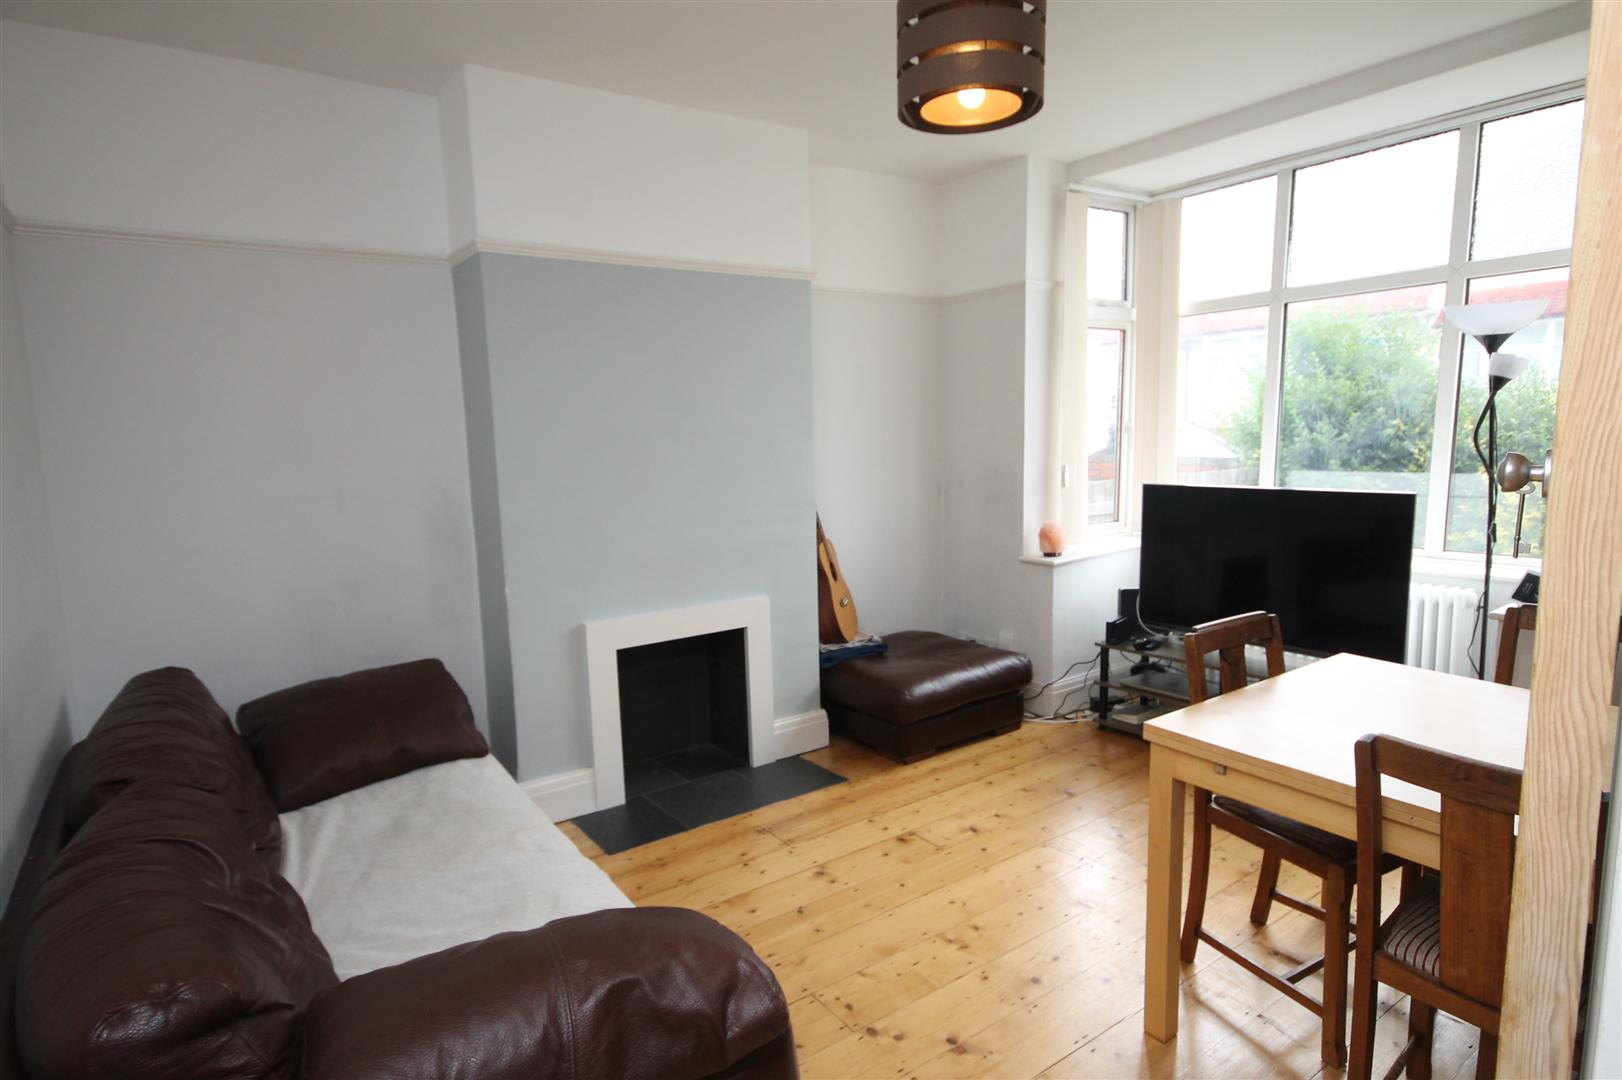 4 bed house to rent in Beverley Road, Bristol, BS7